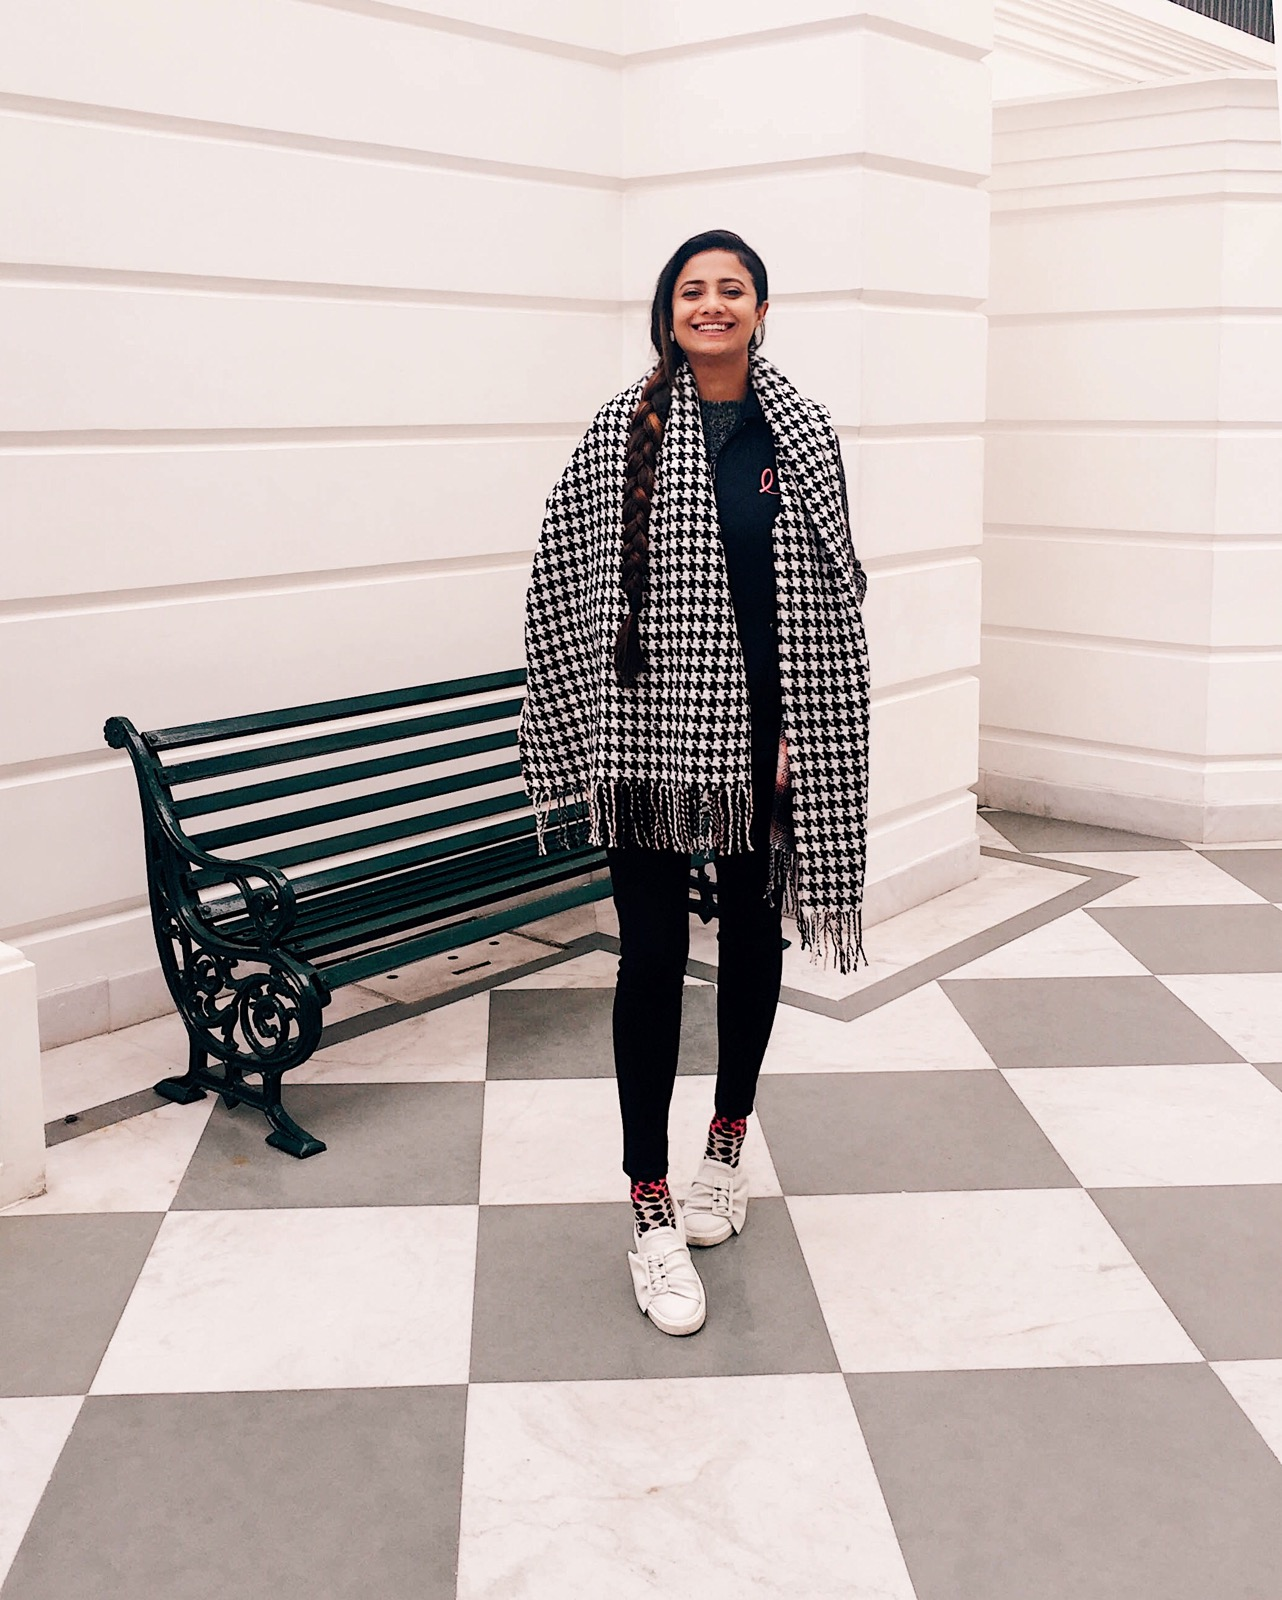 how to dress for shopping, what to wear to shopping, casual winter outfit, style blanket scarf, top indian blog, indian fashion blogger, uk blog, winter outfits, weekend winter outfit, casual chic, effortless style, 2017 blogger outfit